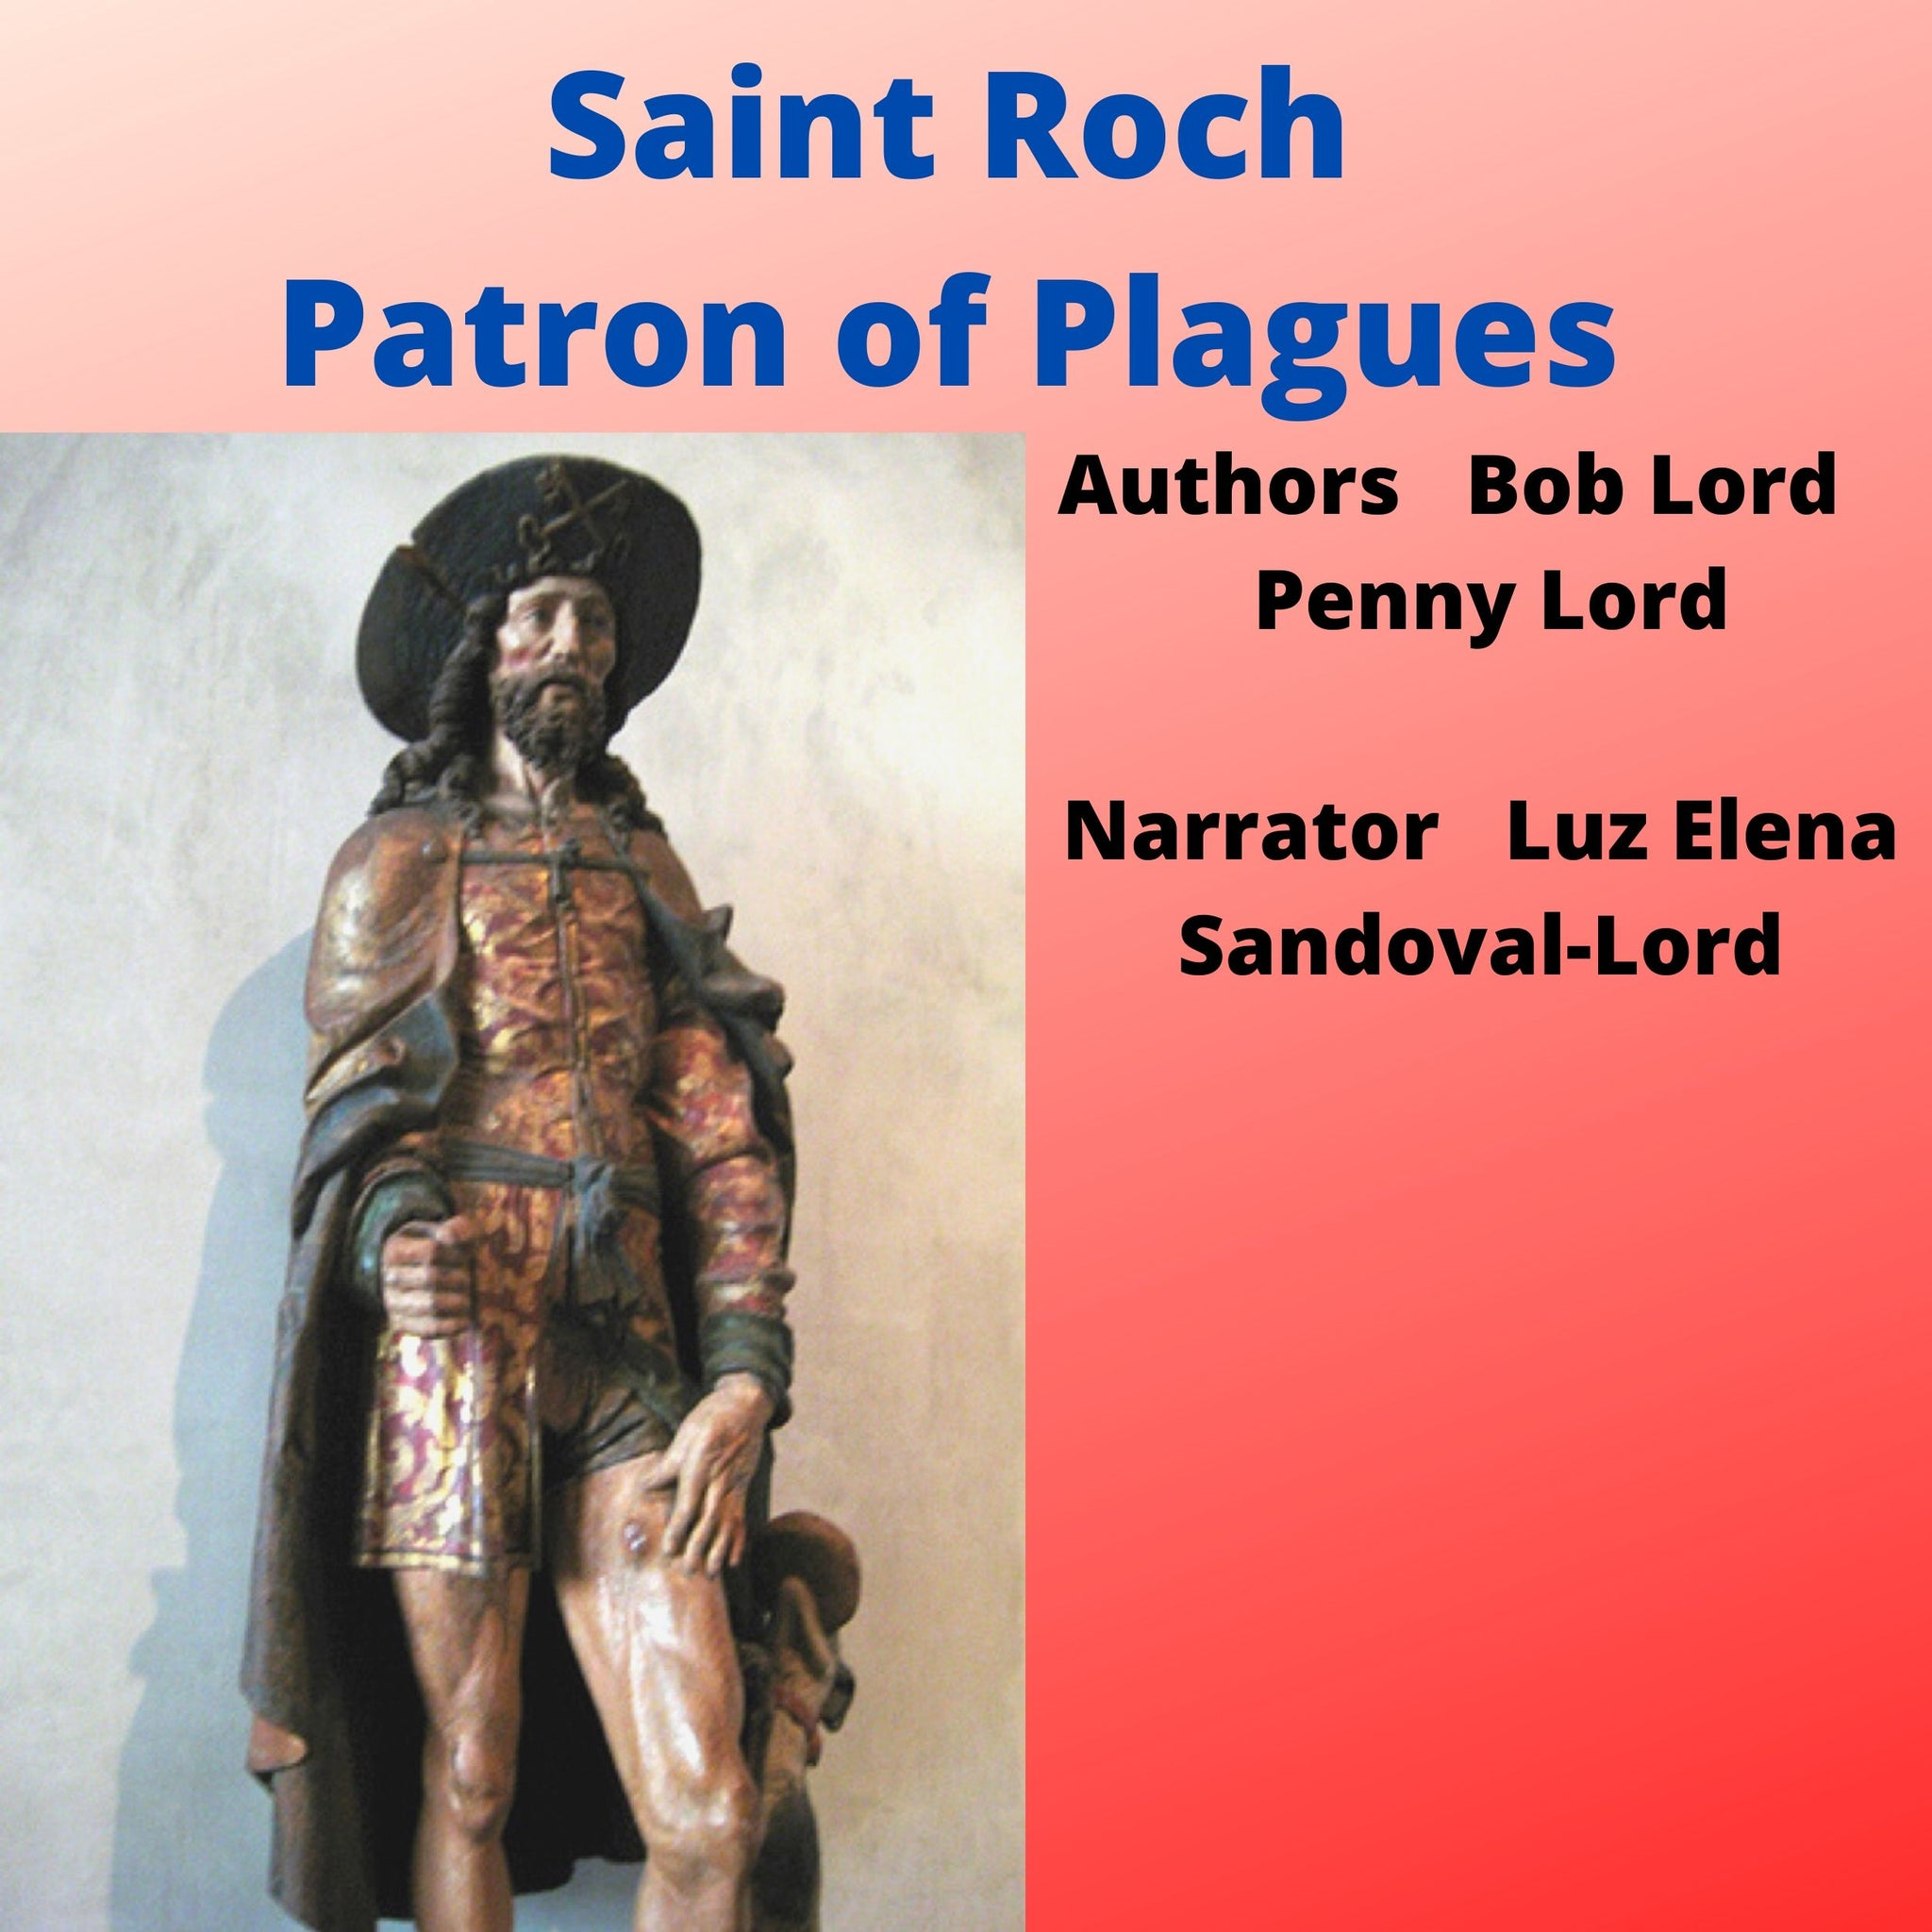 Saint Roch Audiobook Audiobook Bob and Penny Lord Ministry